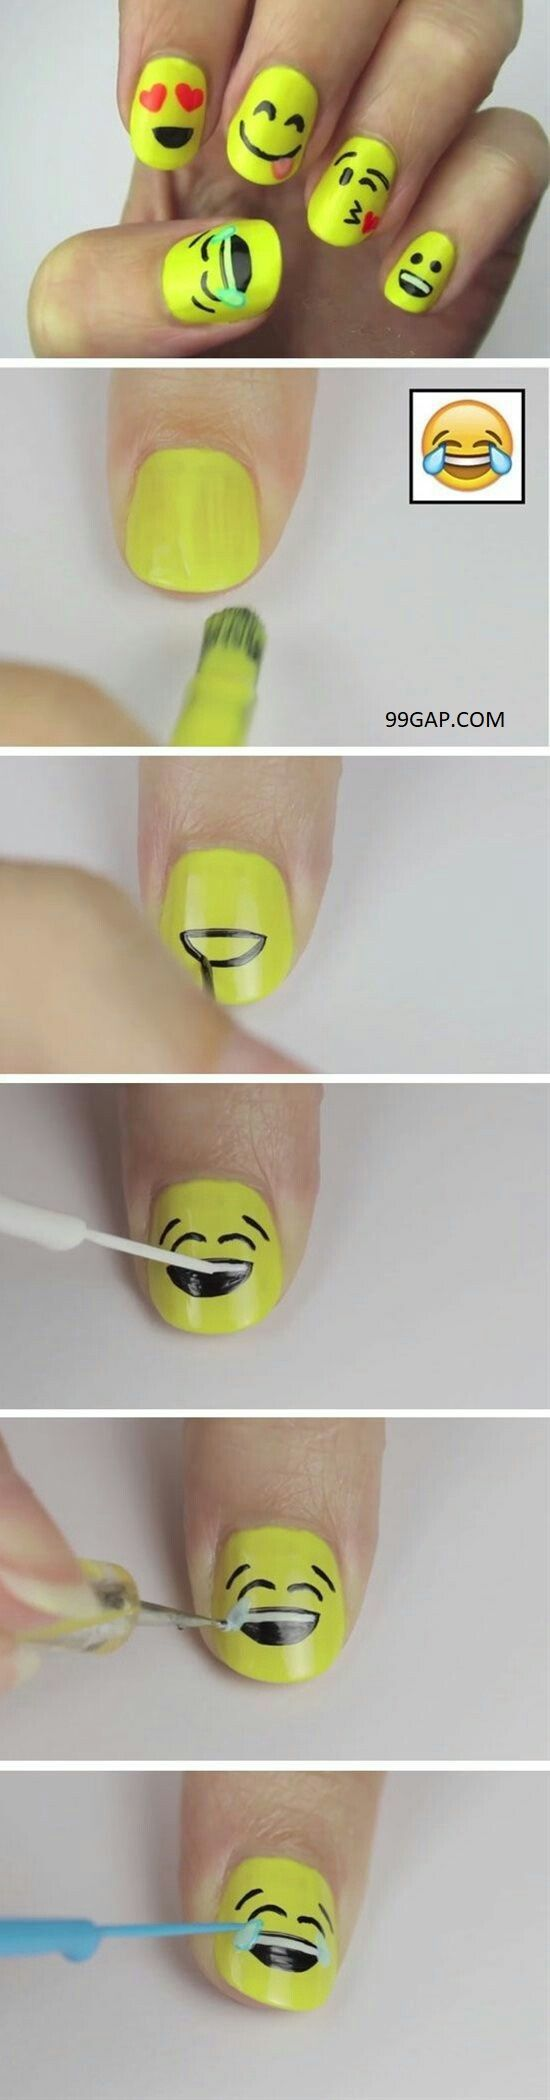 Pictures Of Nails vs. Emoji